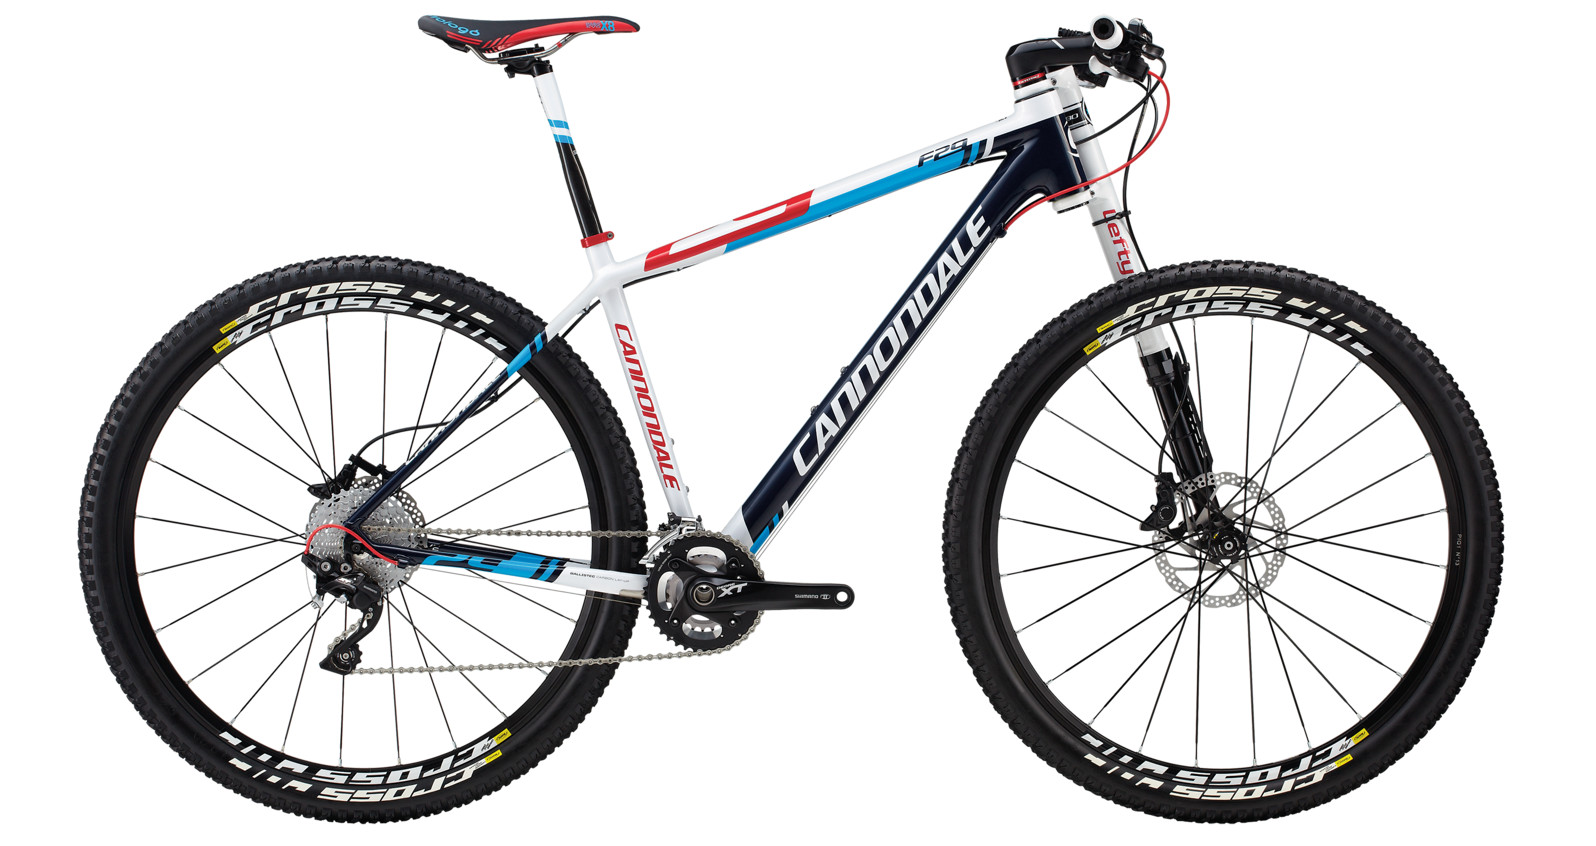 Trail 5 13760 likewise Bronson Carbon With XX1AM27ENVE Build 12022 besides Stock Illustration Car Parts together with Norpro 3041w 4 Piece Measuring Spoon Set also A4 Saloon. on standard car 2014